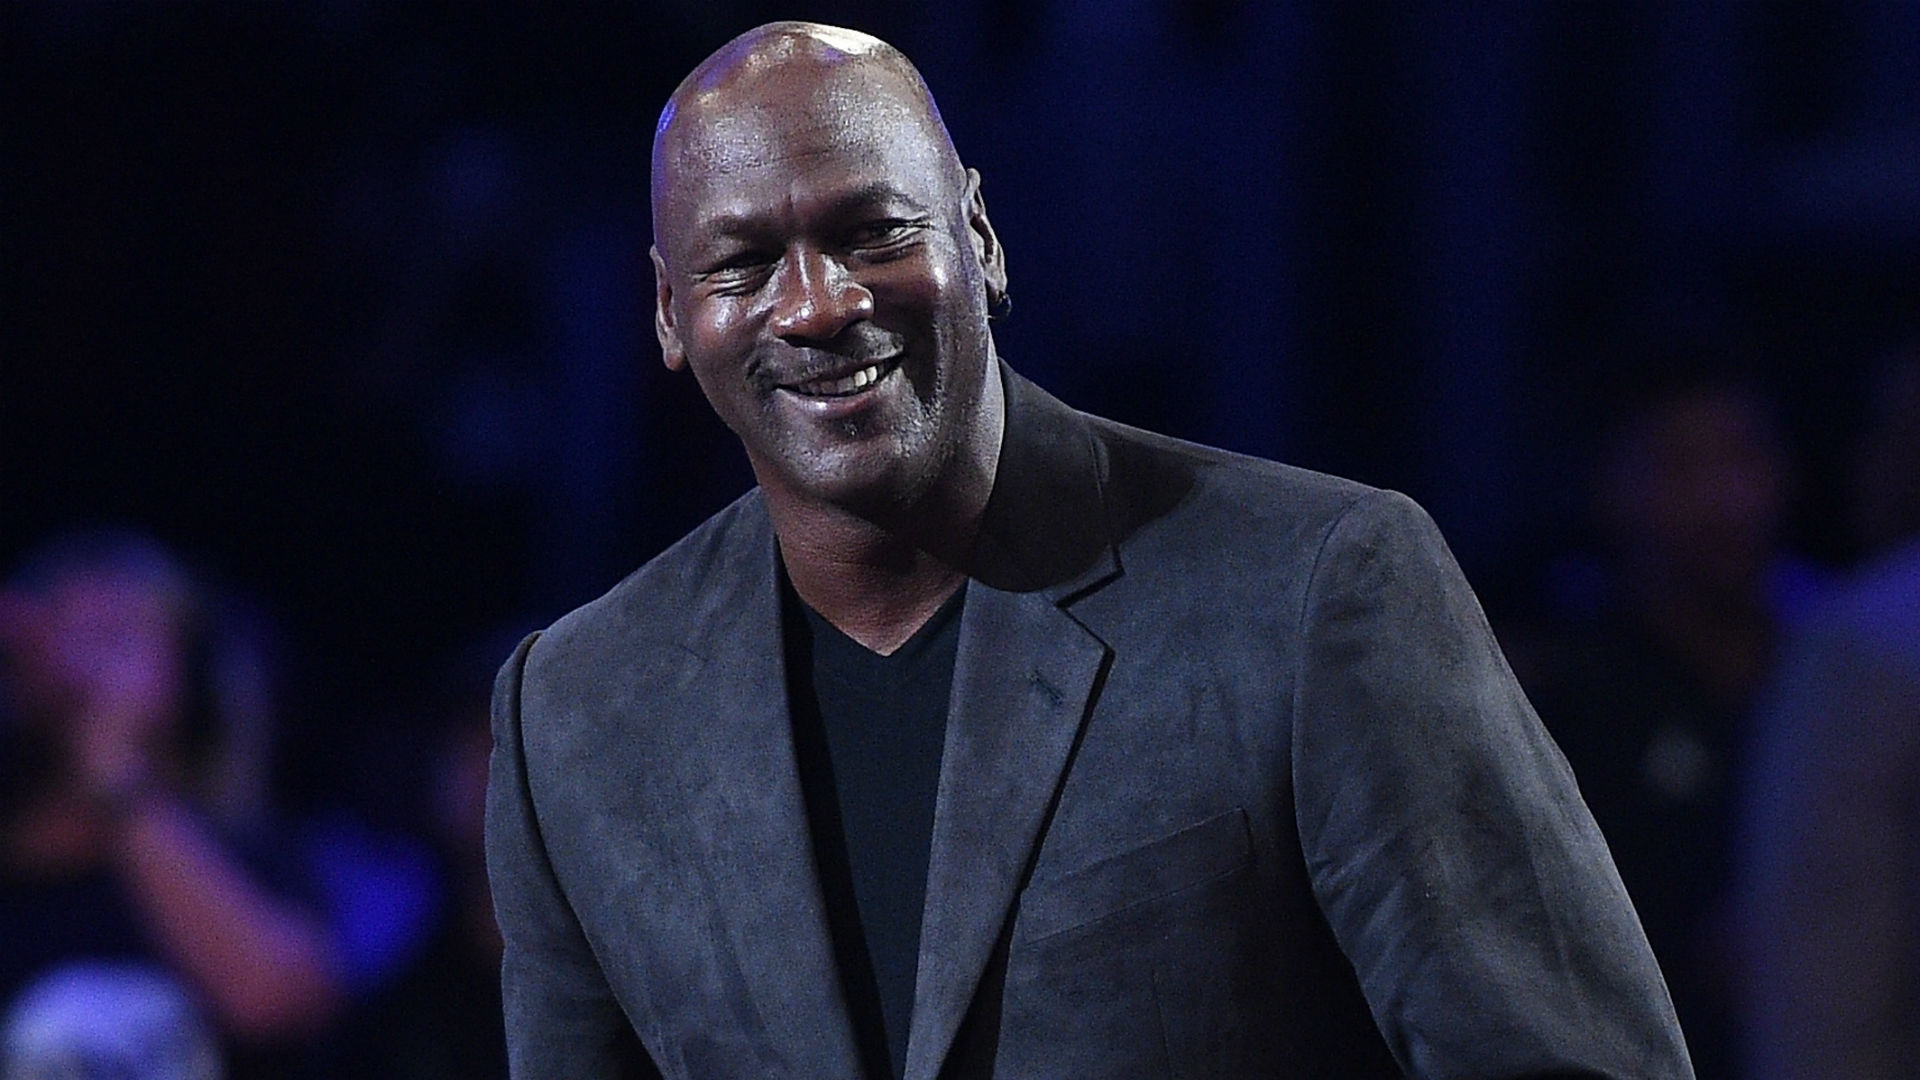 Michael Jordan impressed by Harden, Westbrook records